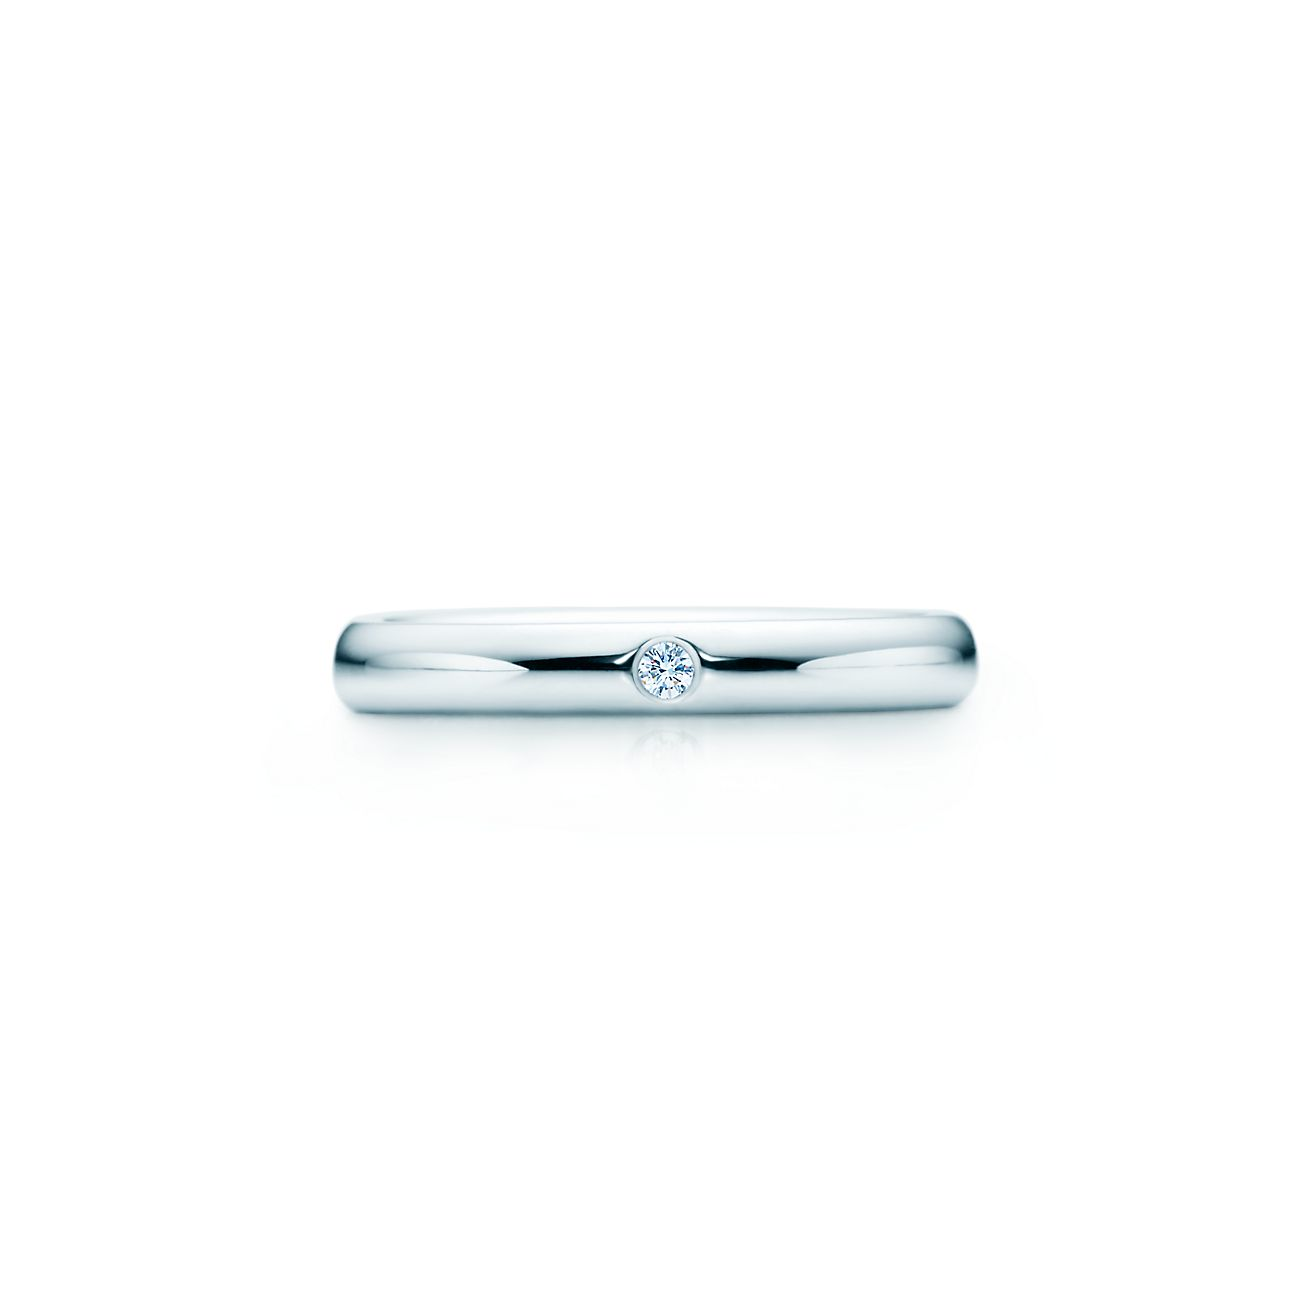 Elsa Peretti stacking band ring in 18k gold with diamonds - Size 10 1/2 Tiffany & Co. WT49u0duZ